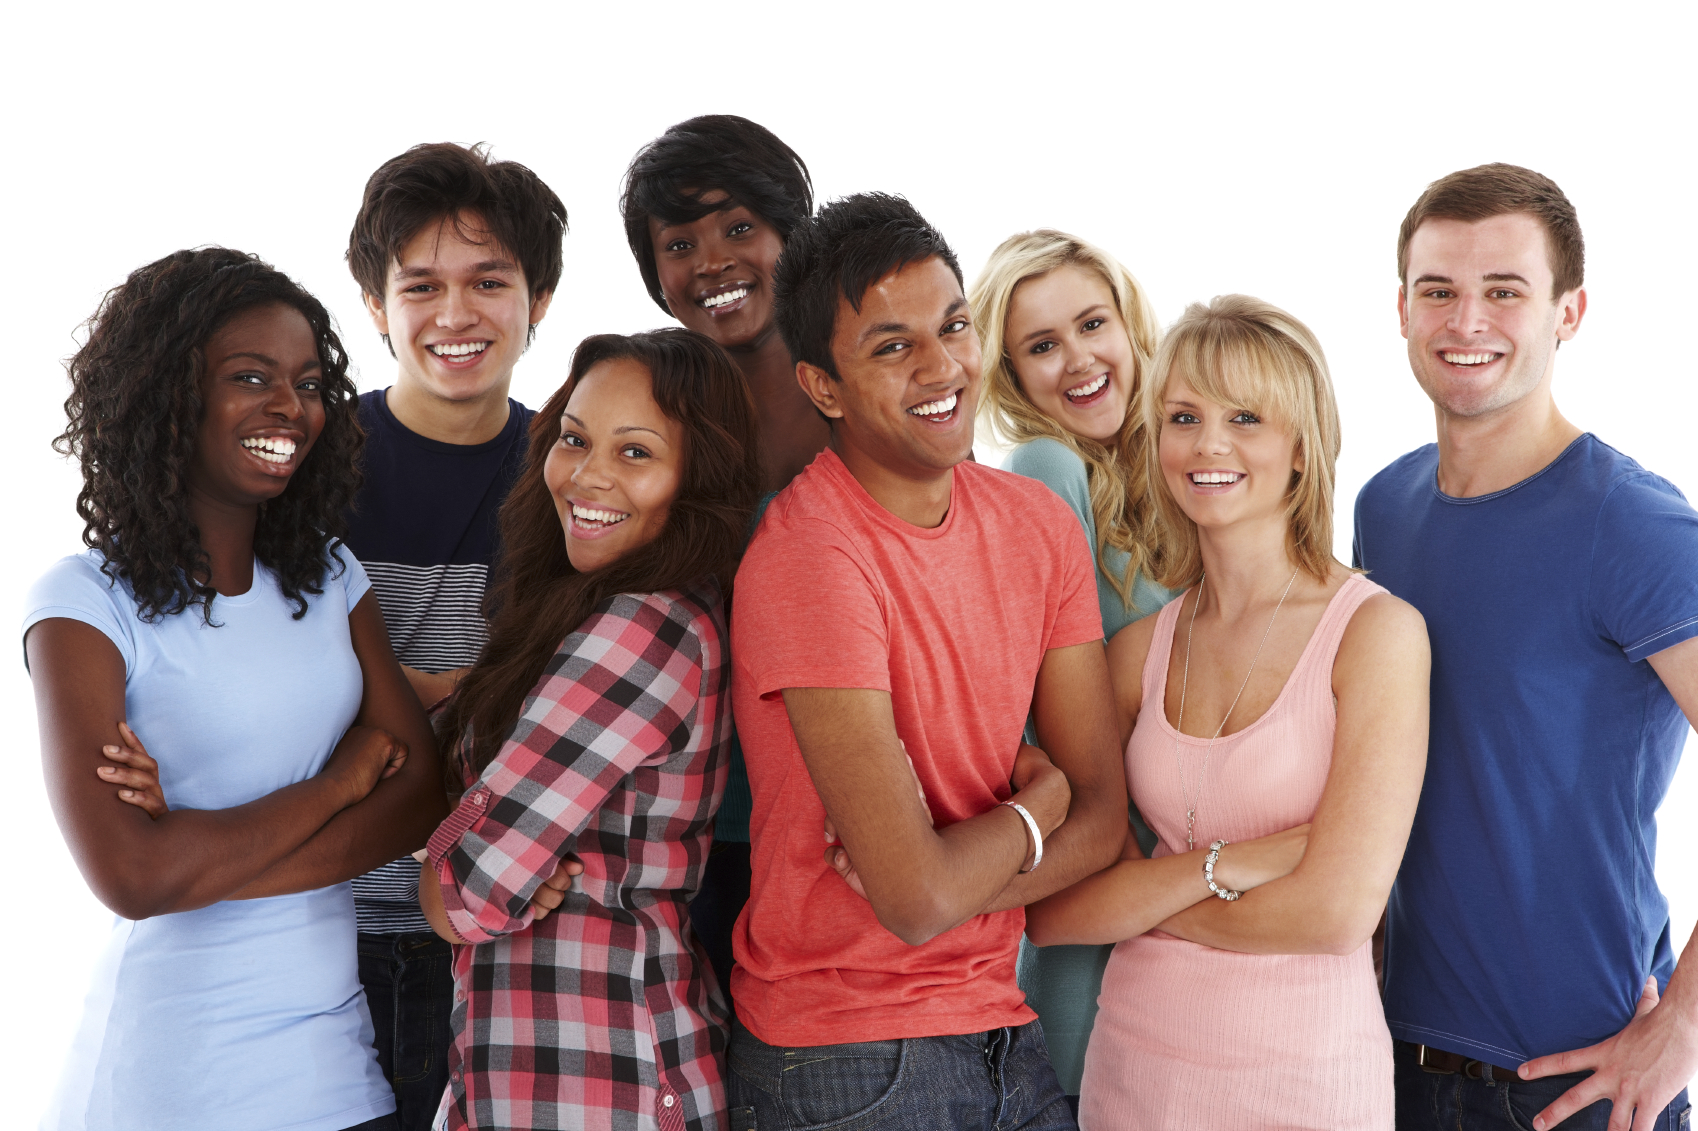 Group of diverse teenagers standing together and smiling for the camera. Horizontal shot.